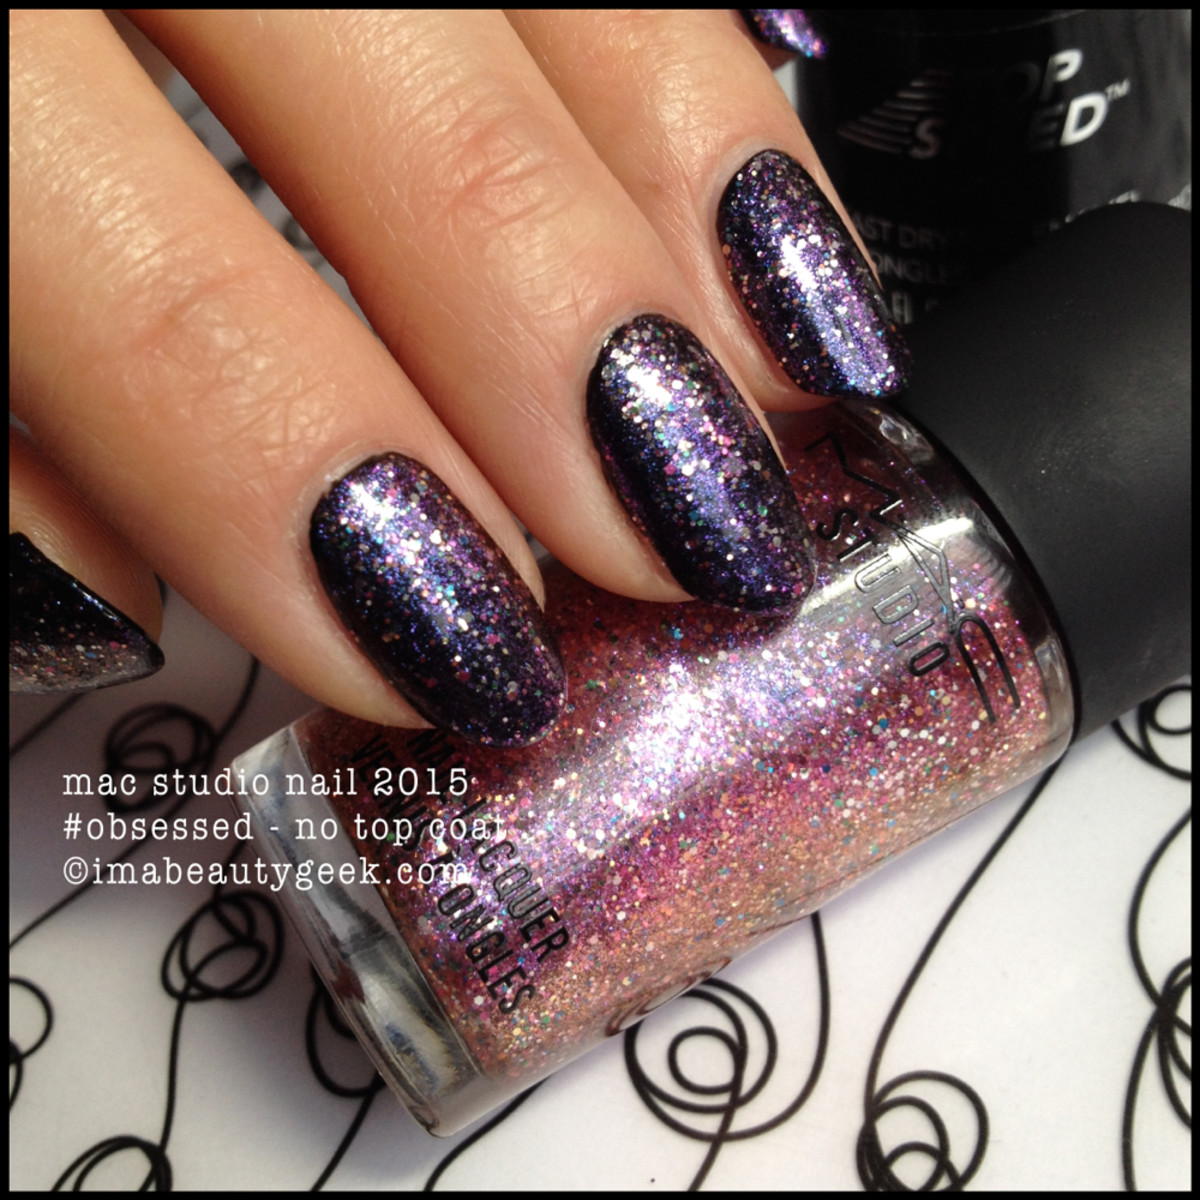 MAC #Obsessed nail polish swatch